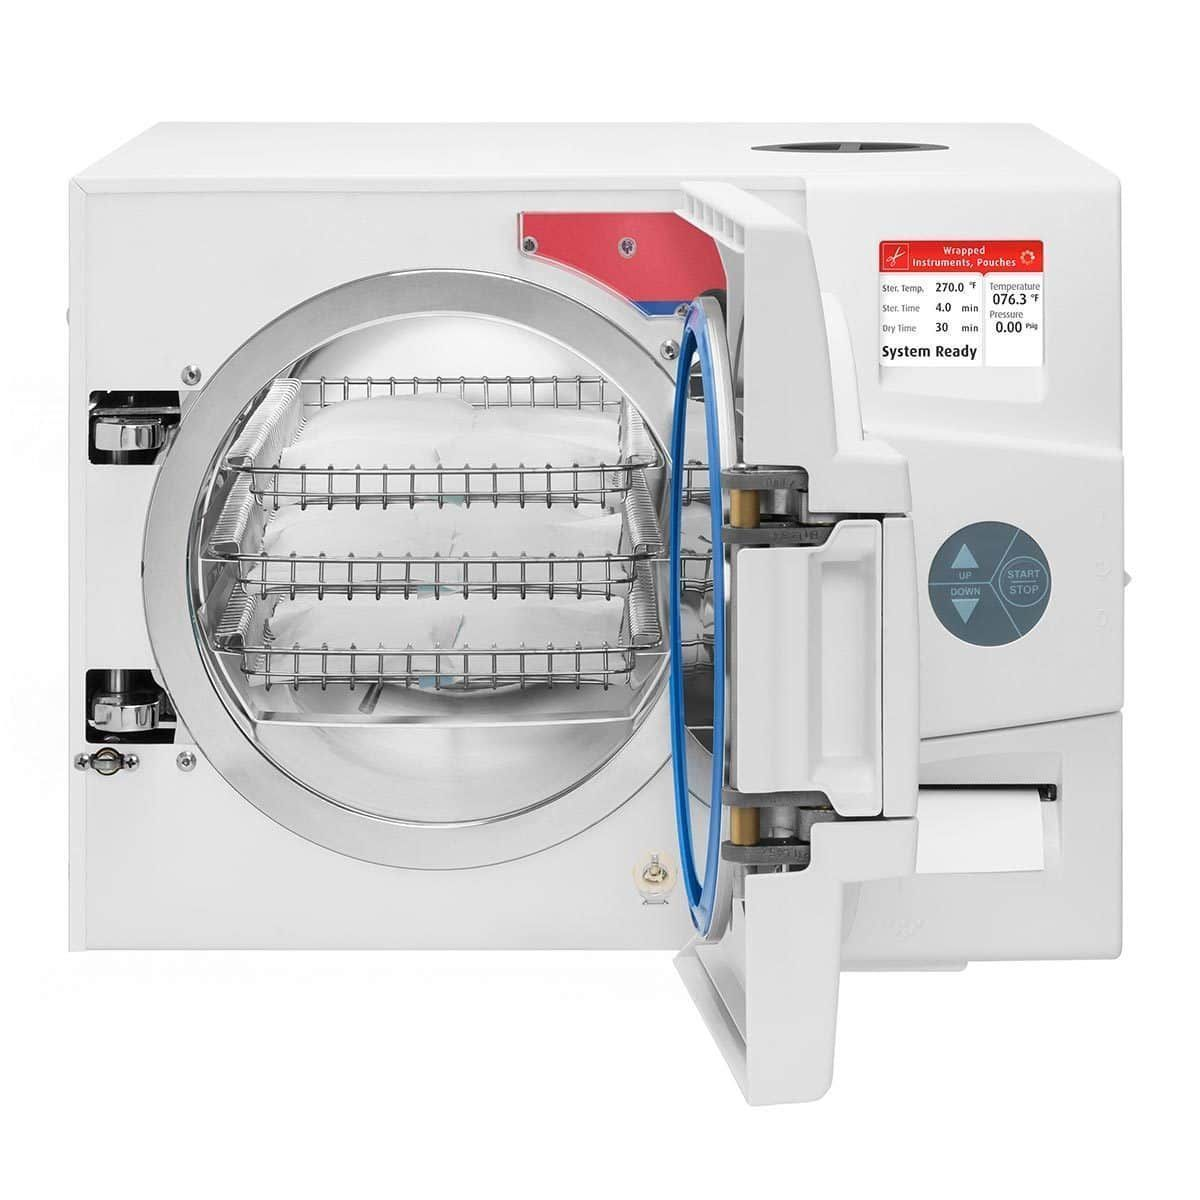 EZ9Plus Tuttnauer Automatic Autoclave - New - In Stock - Boothmed - Rebate Promotion Included